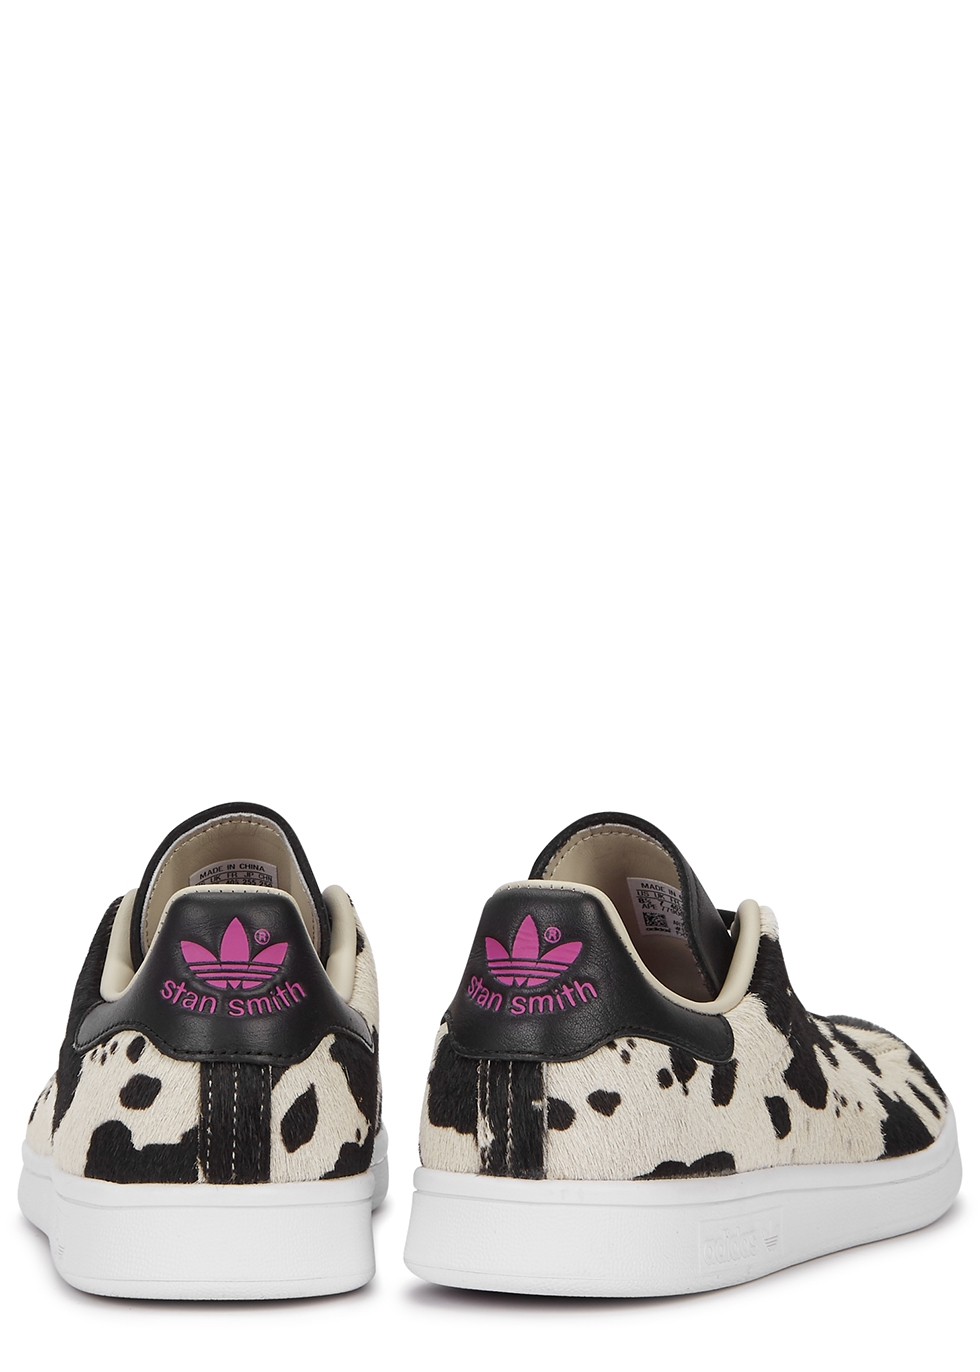 sneakers tom smith adidas